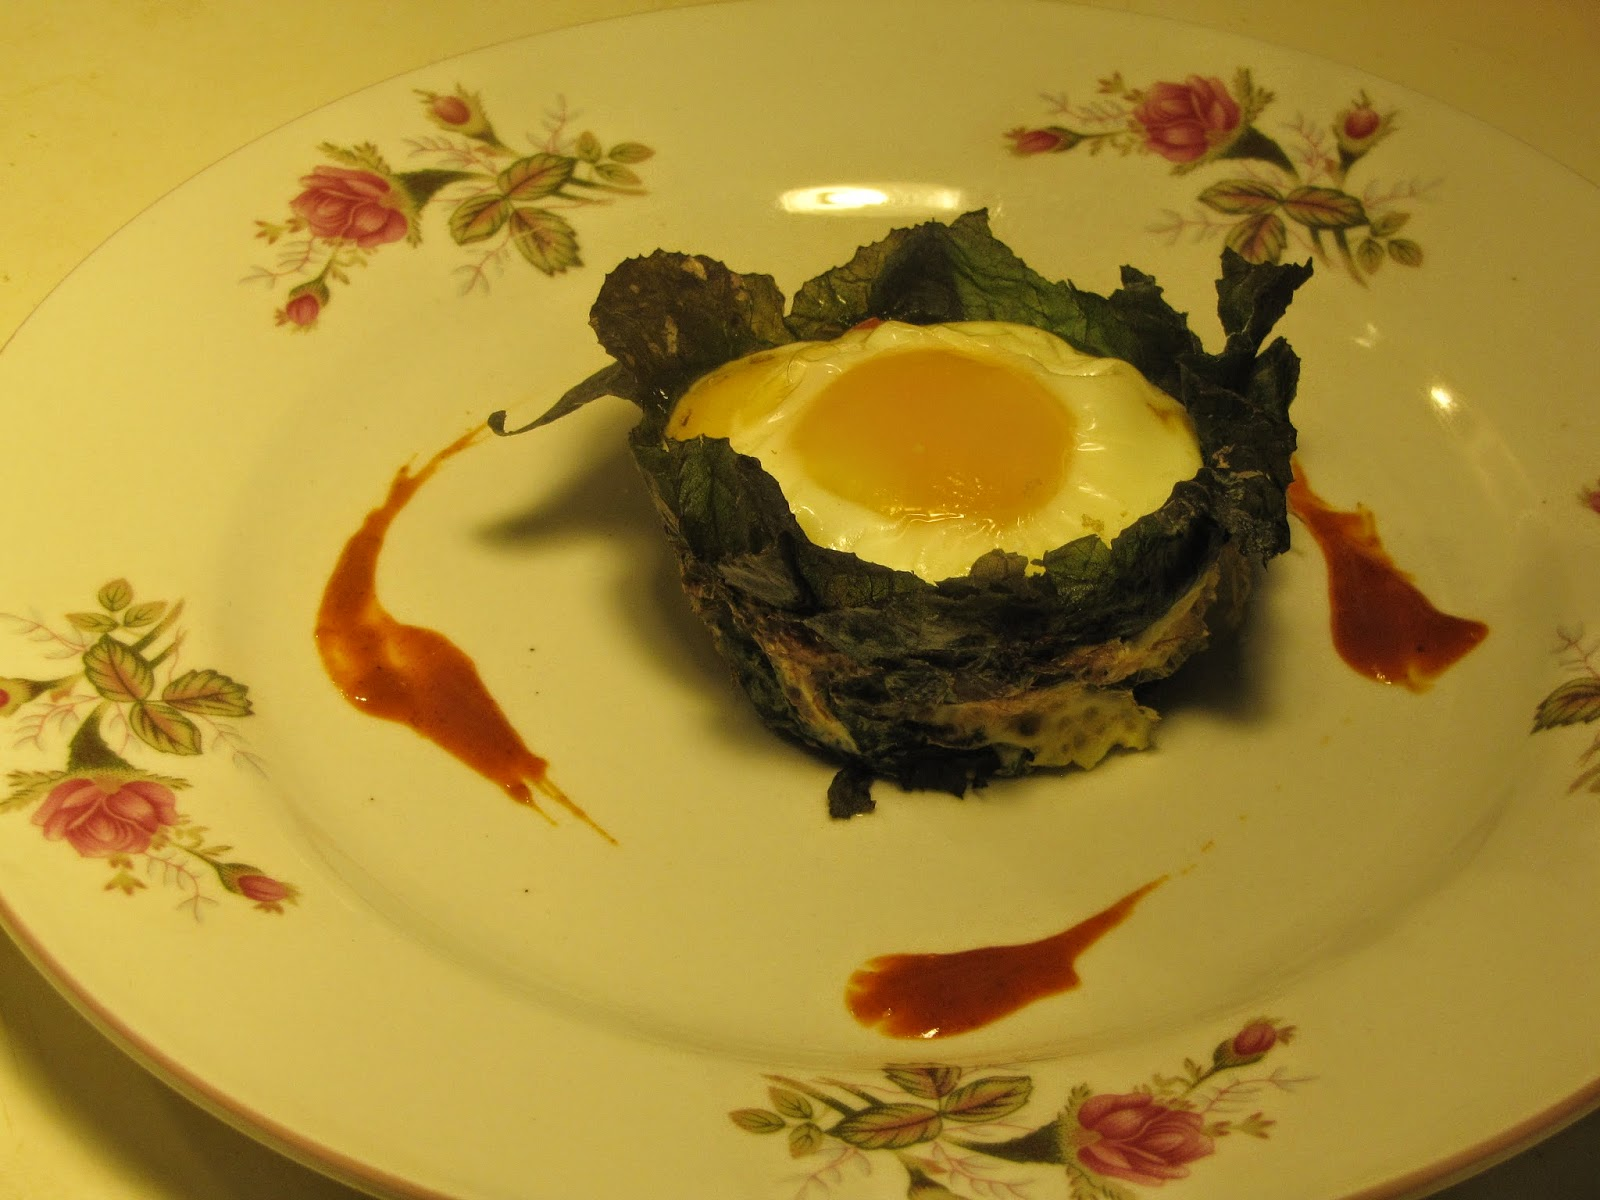 Baked egg in a collard green cup presented on plate with drippings of hot sauce